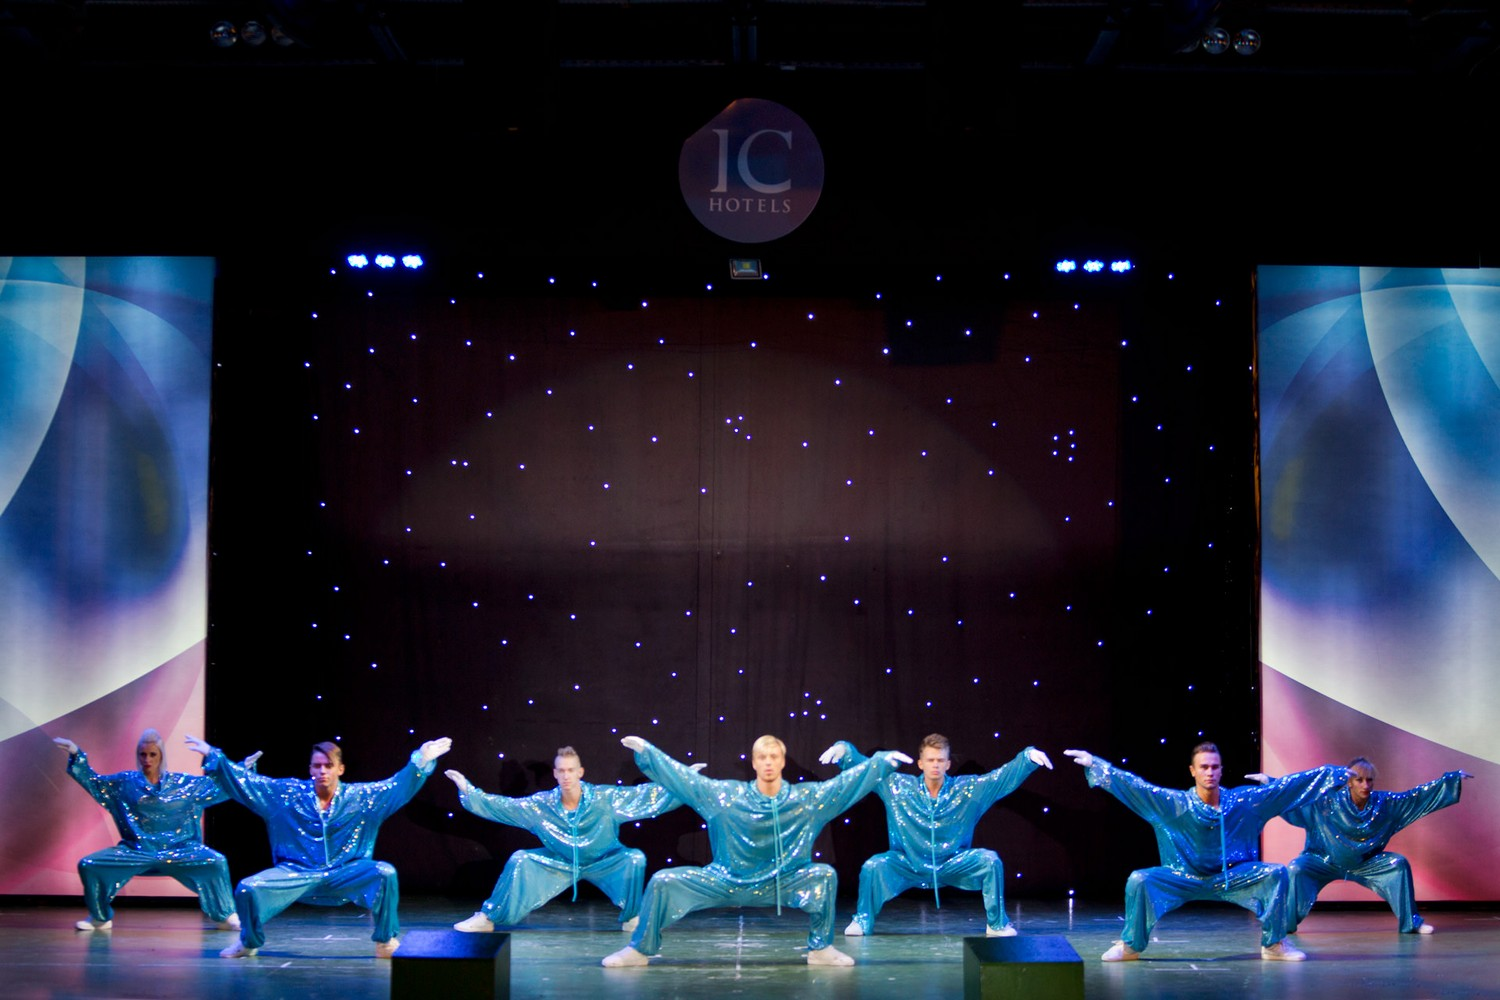 ic_hotels_green_palace_evening_show_4.jpg